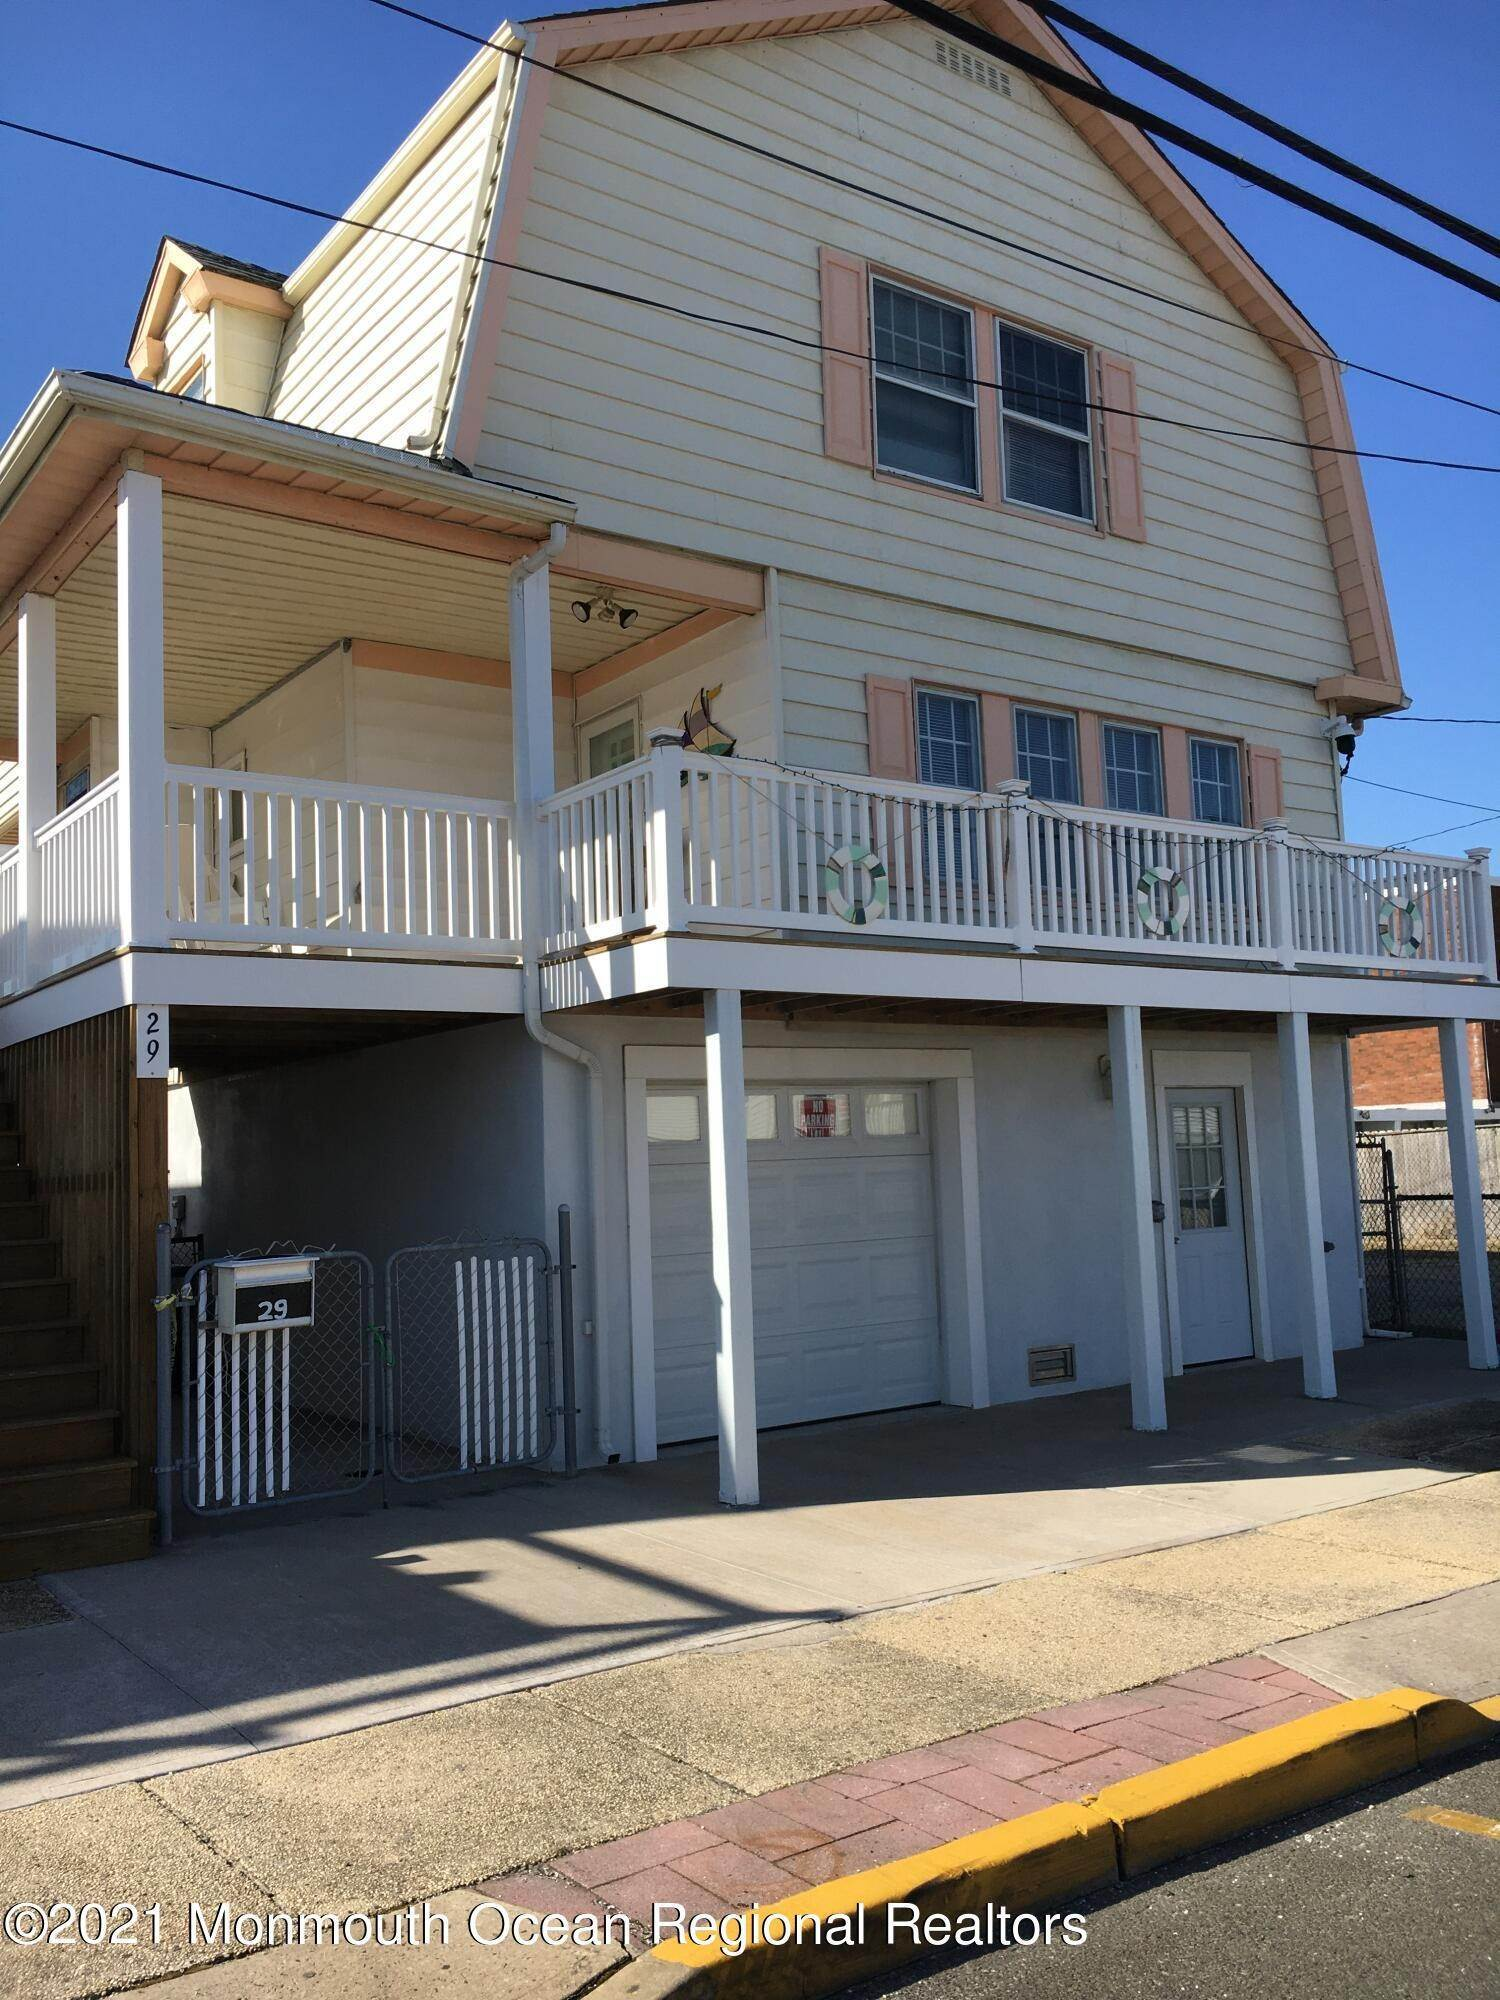 Single Family Homes for Sale at 29 Dupont Avenue Seaside Heights, New Jersey 08751 United States